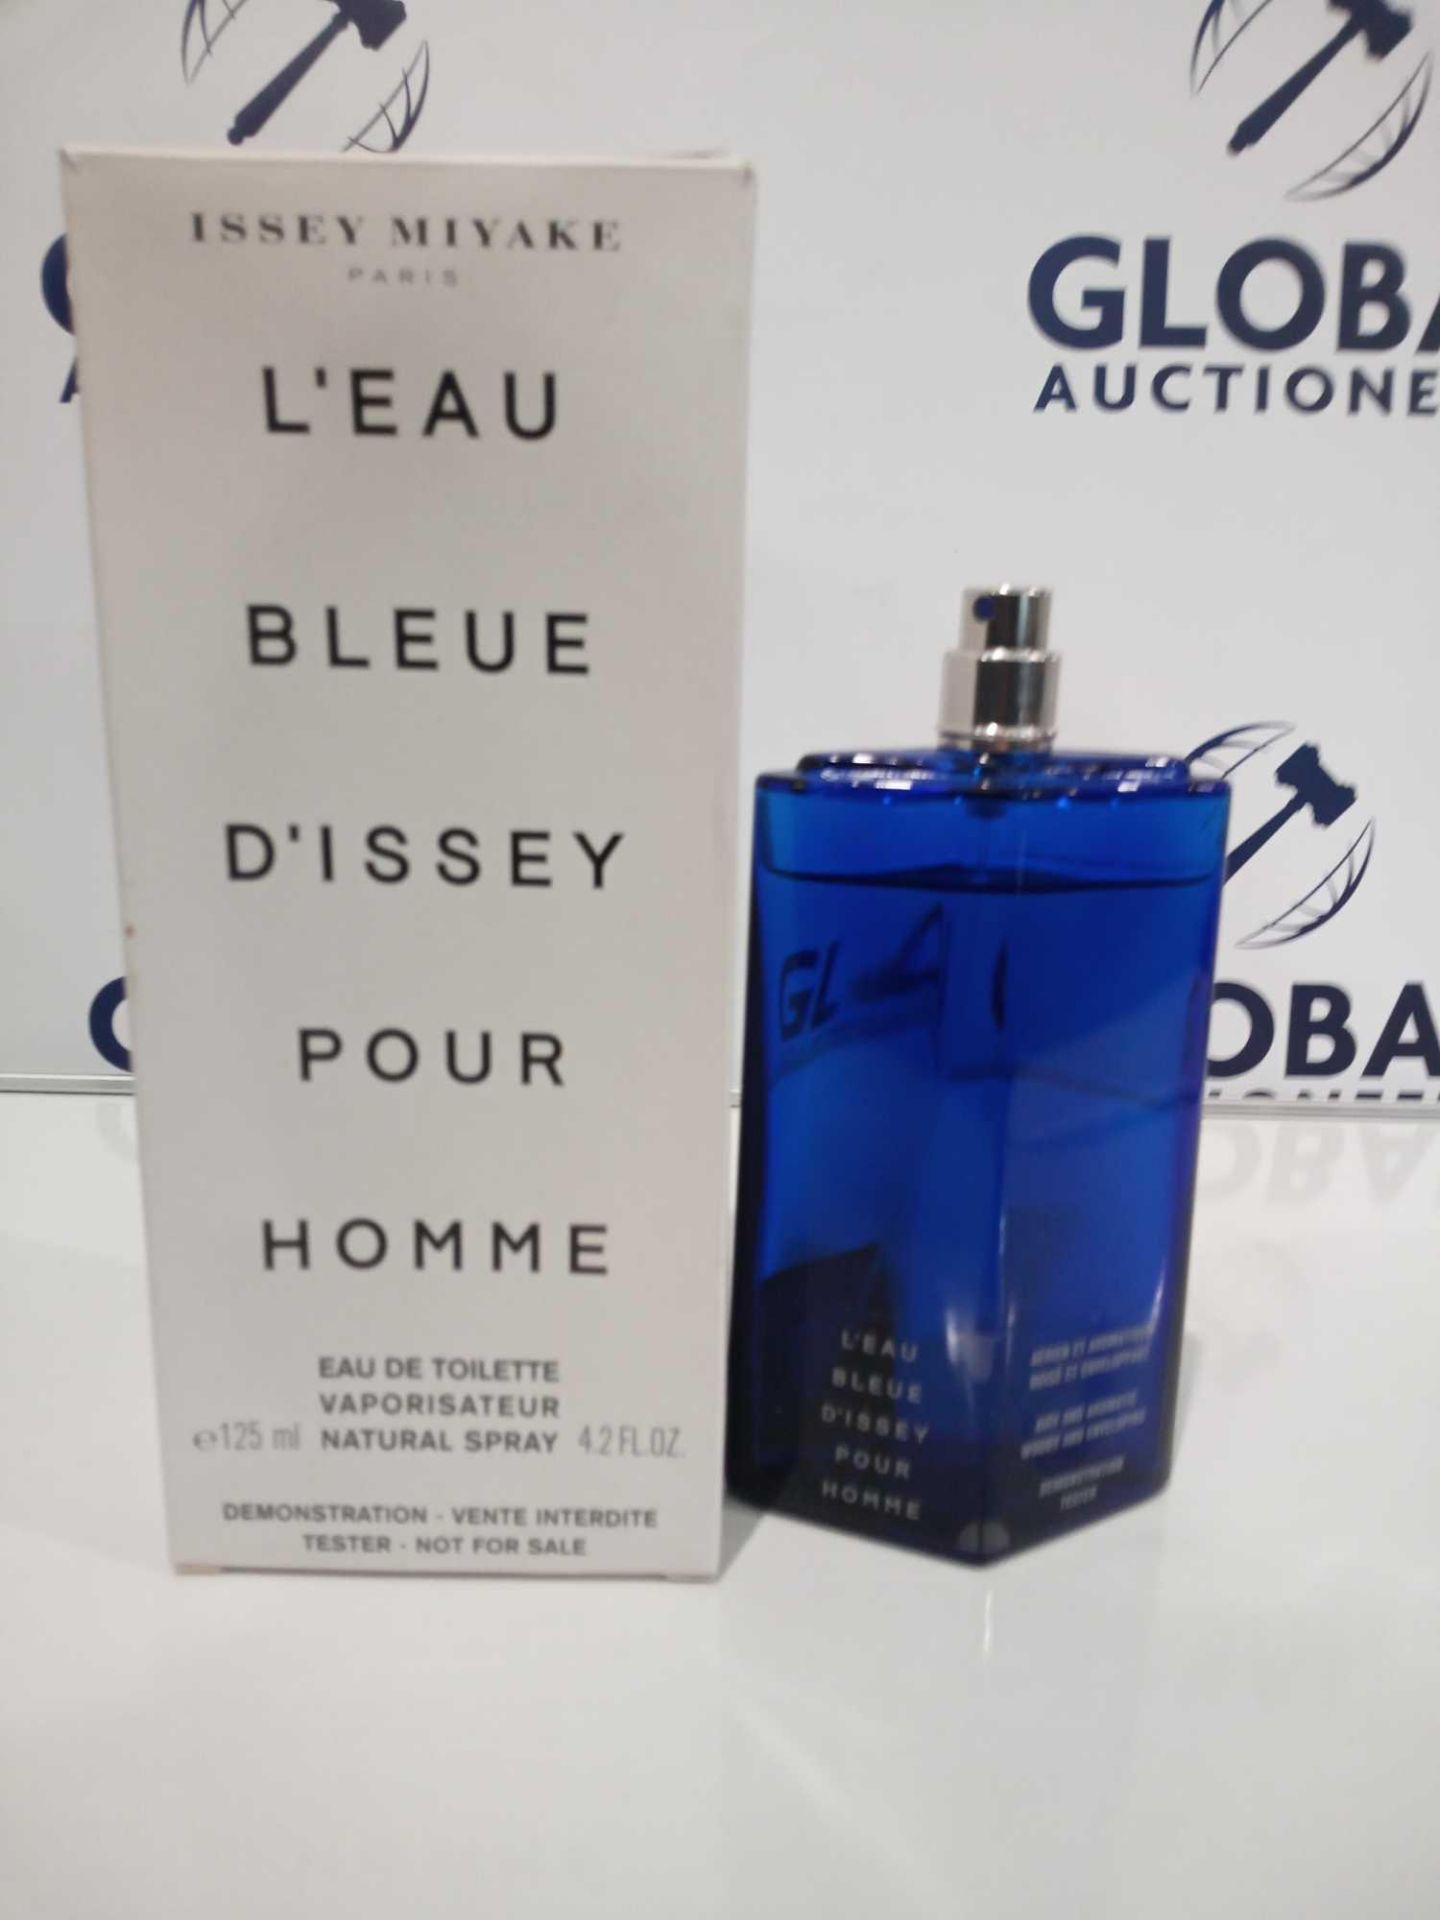 RRP £35 Boxed Brand New Full Tester Bottle Of Issue Miyake L'Eau Blue D'Issey Pour Home 125Ml Eau De